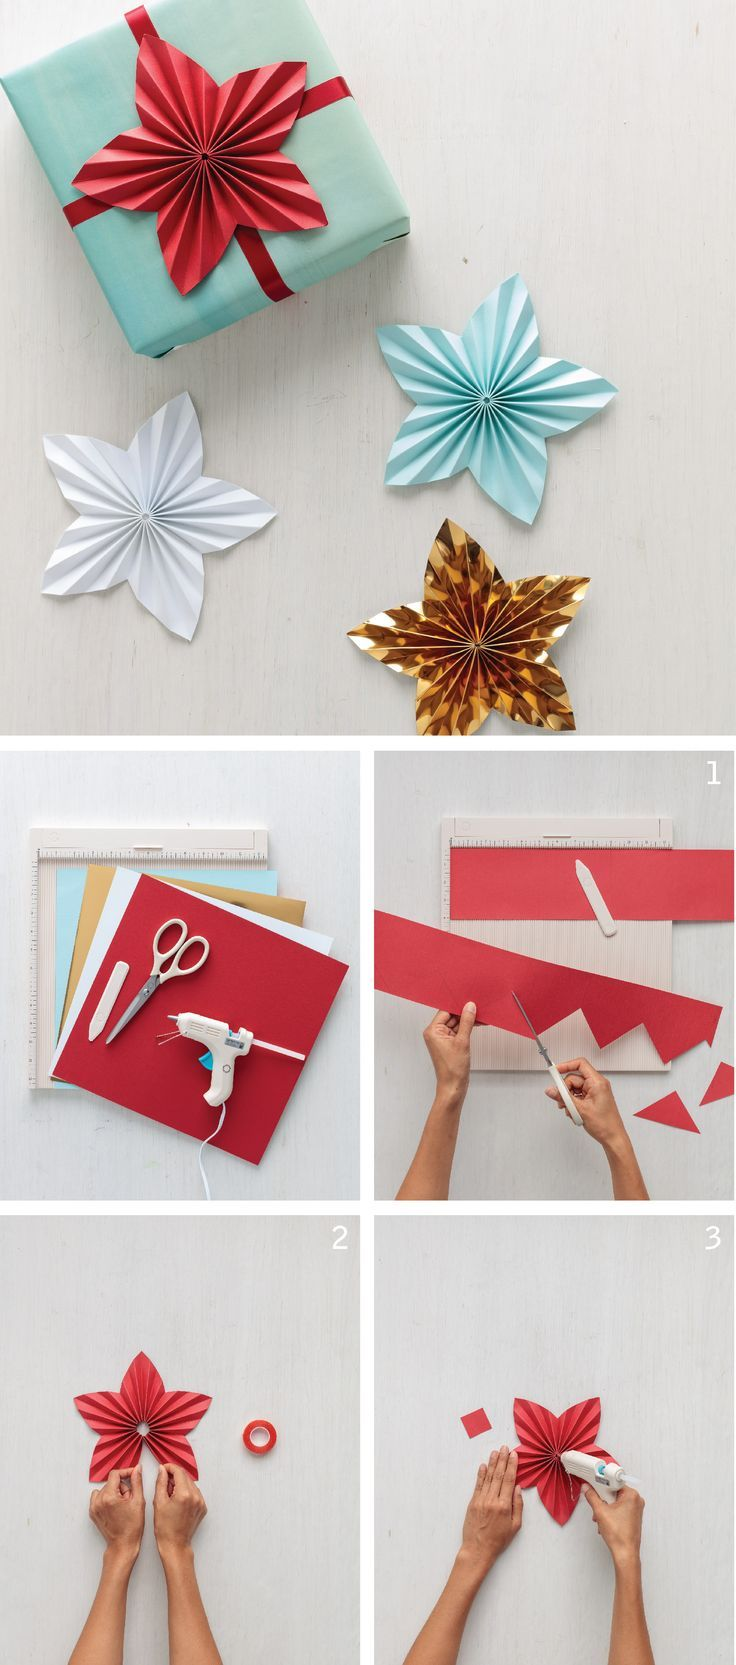 A Beautiful New Take On The Medallion This Diy Star Topper Can Make A Plain Gift More Festive All You Need Diy Christmas Paper Gift Toppers Paper Crafts Diy